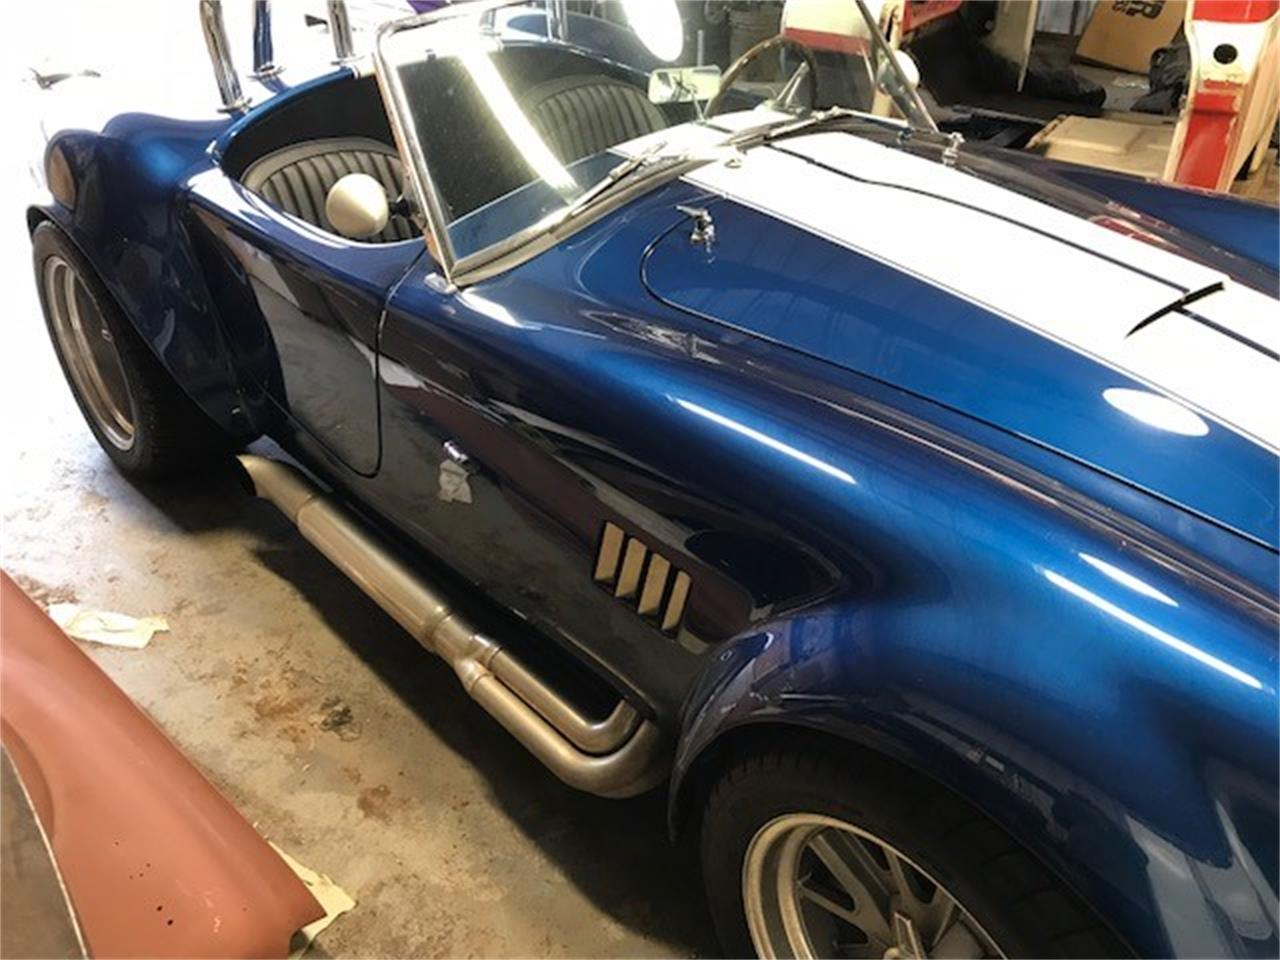 Large Picture of 1967 Ford Cobra located in Santa Fe Texas - $60,000.00 Offered by a Private Seller - MKVN